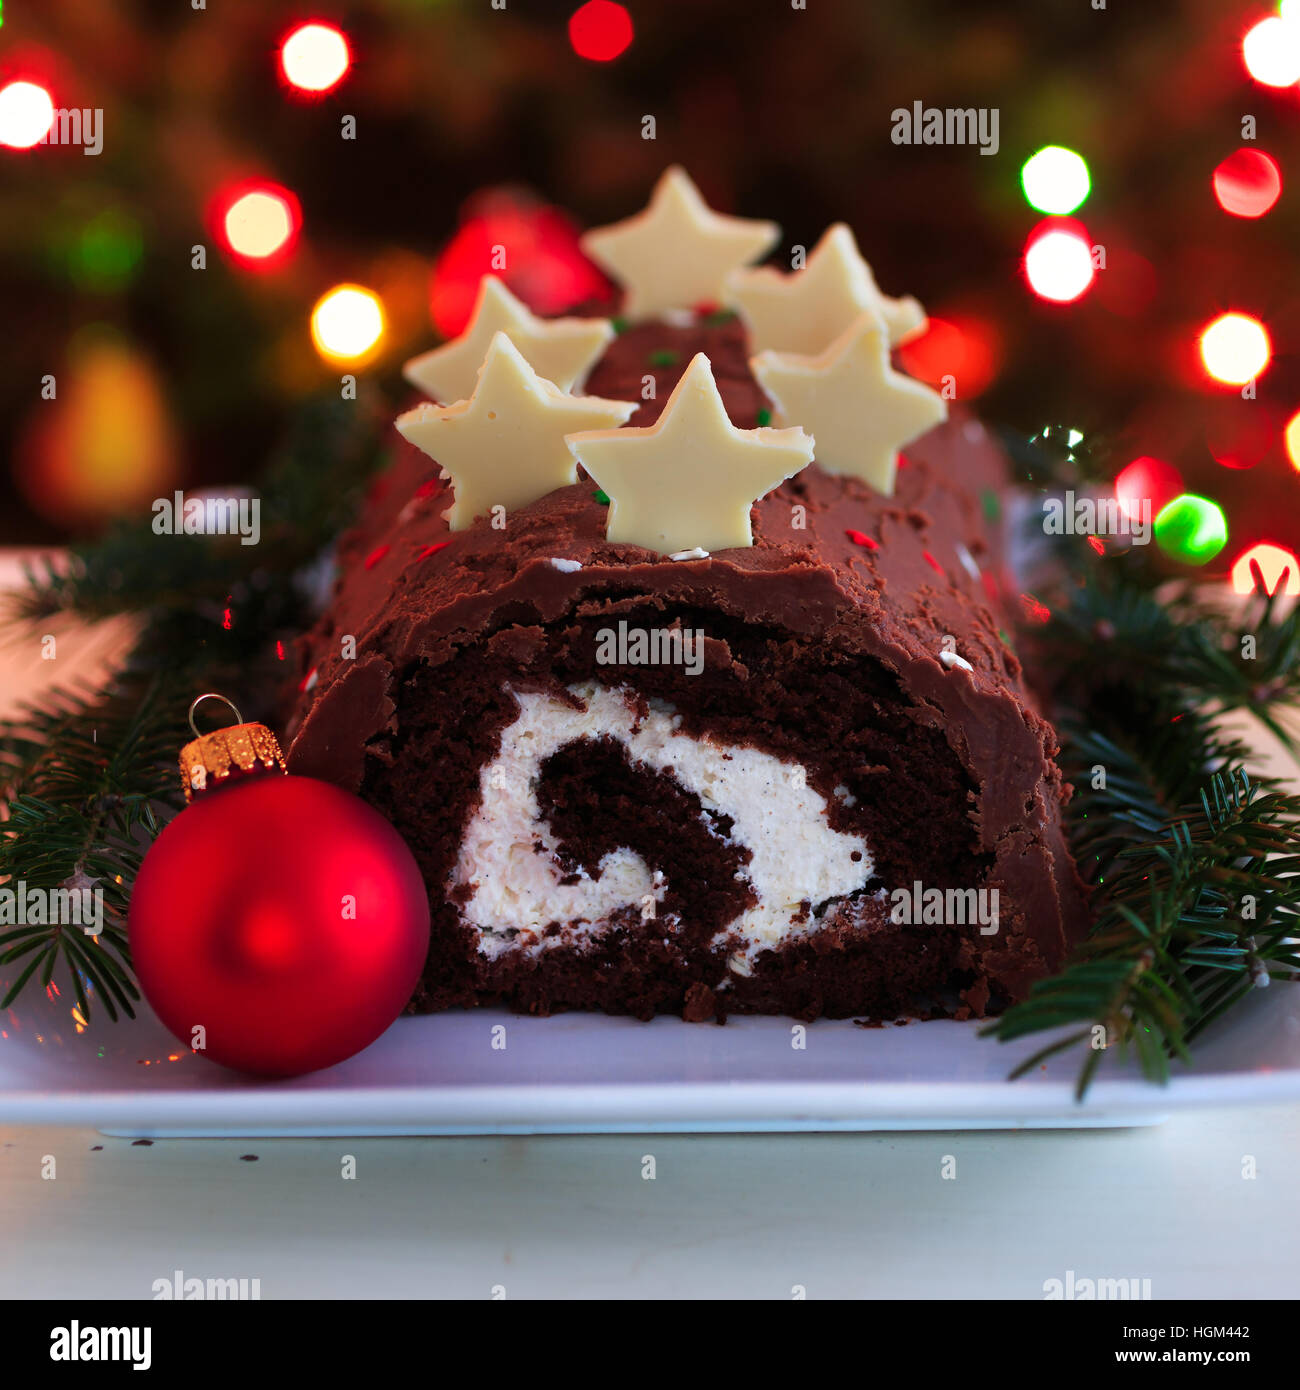 Homemade chocolate yule log Christmas cake against a background of Christmas lights. - Stock Image